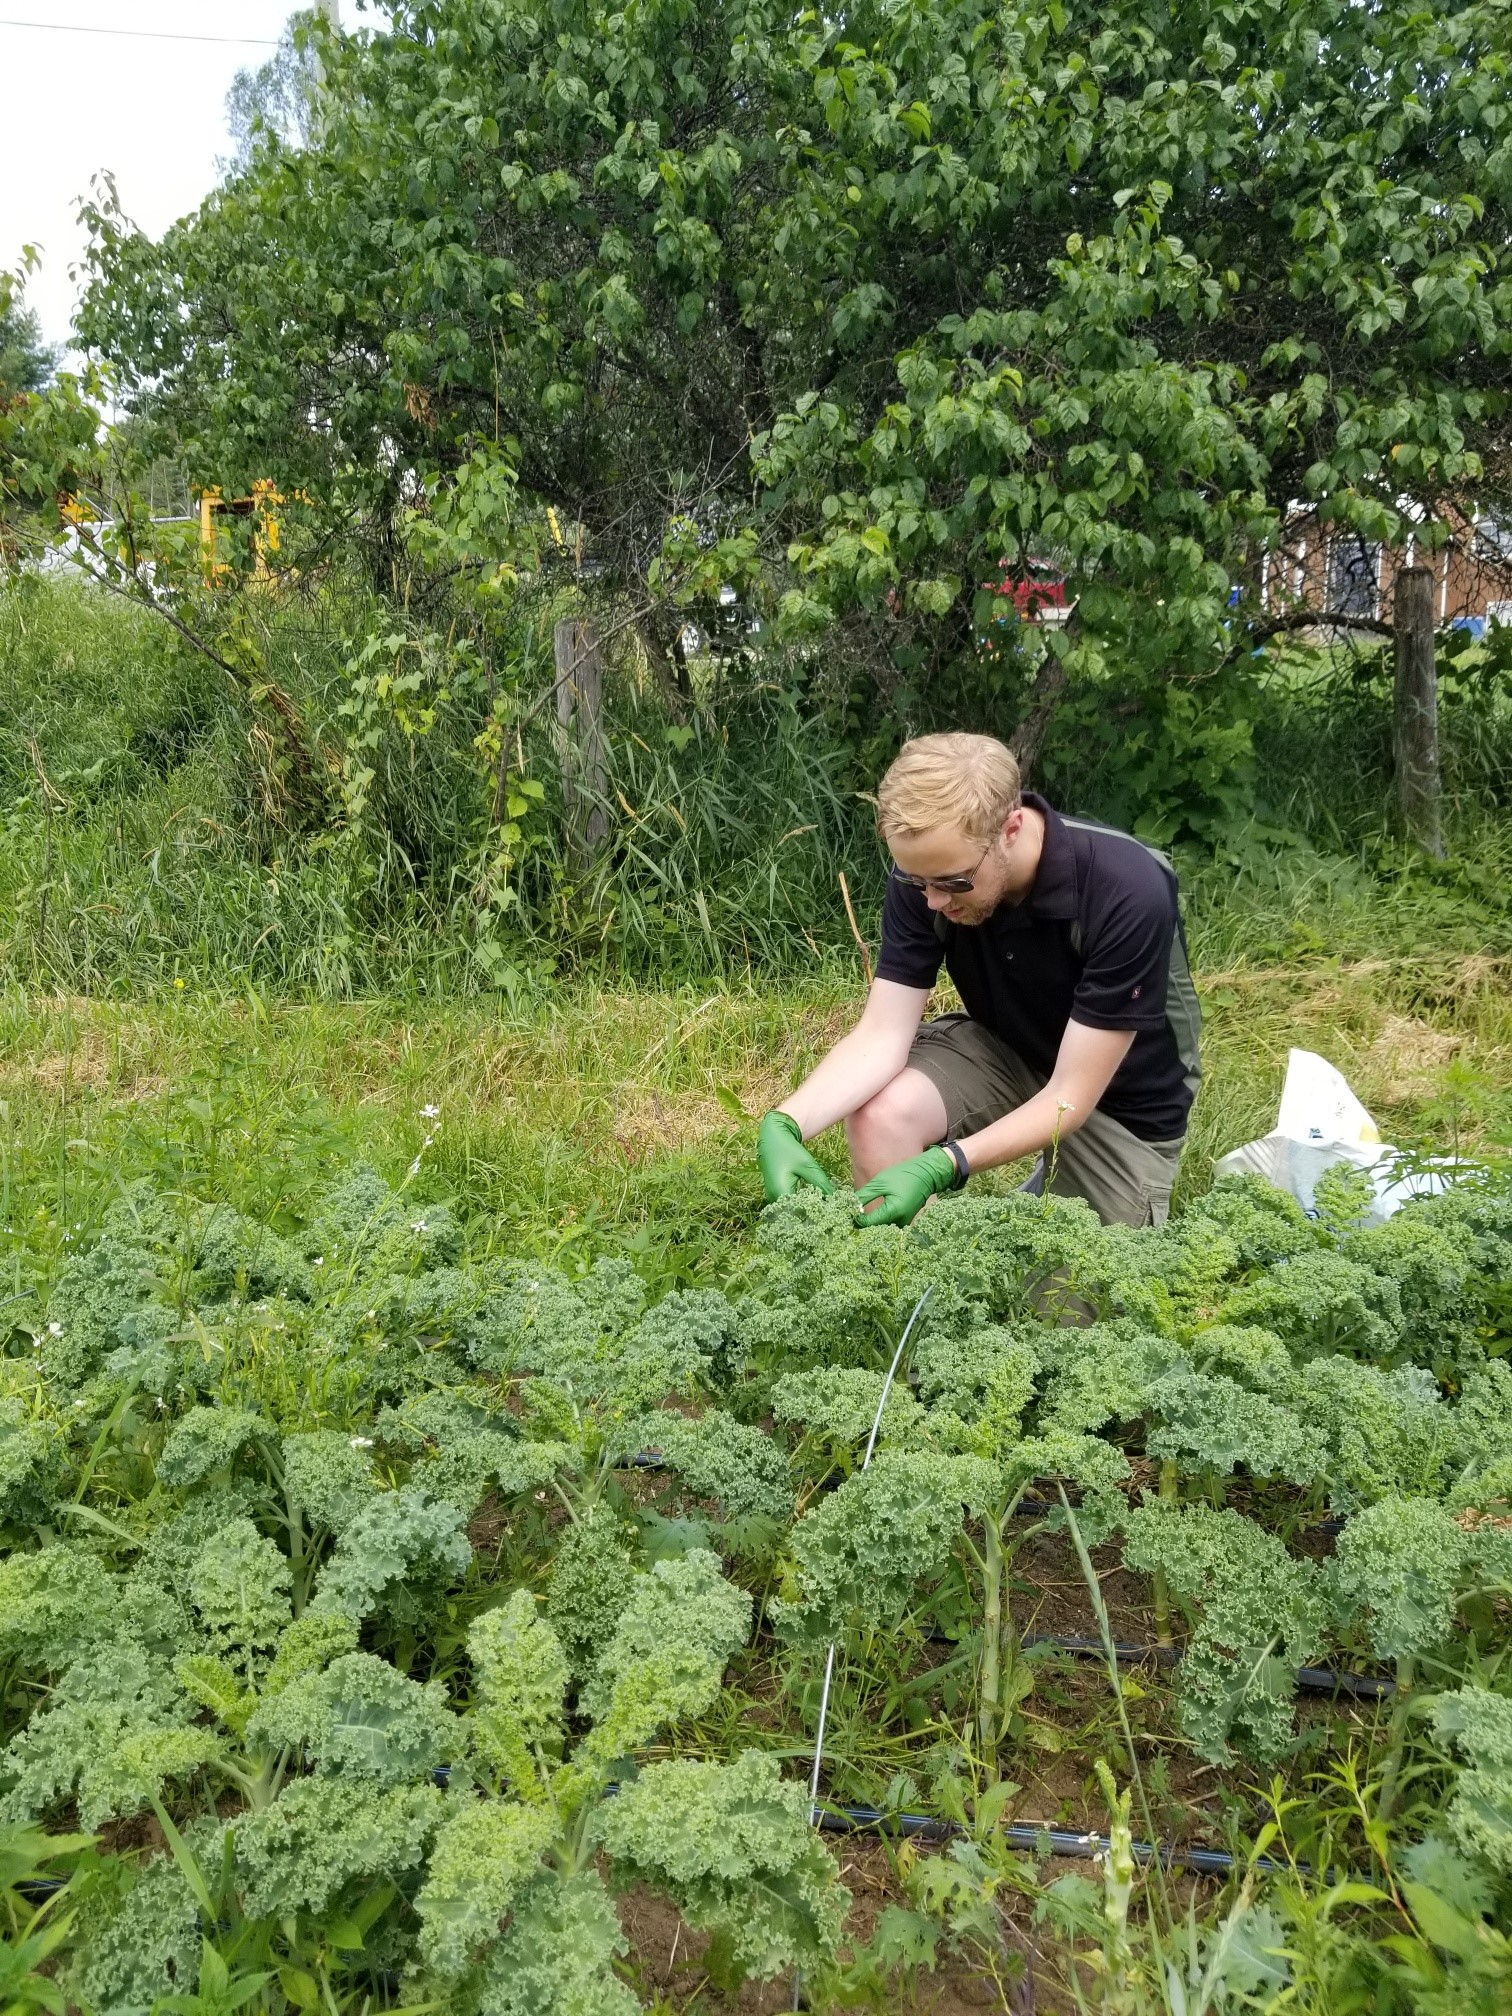 CNSC staff collecting kale near the CRL site in 2019